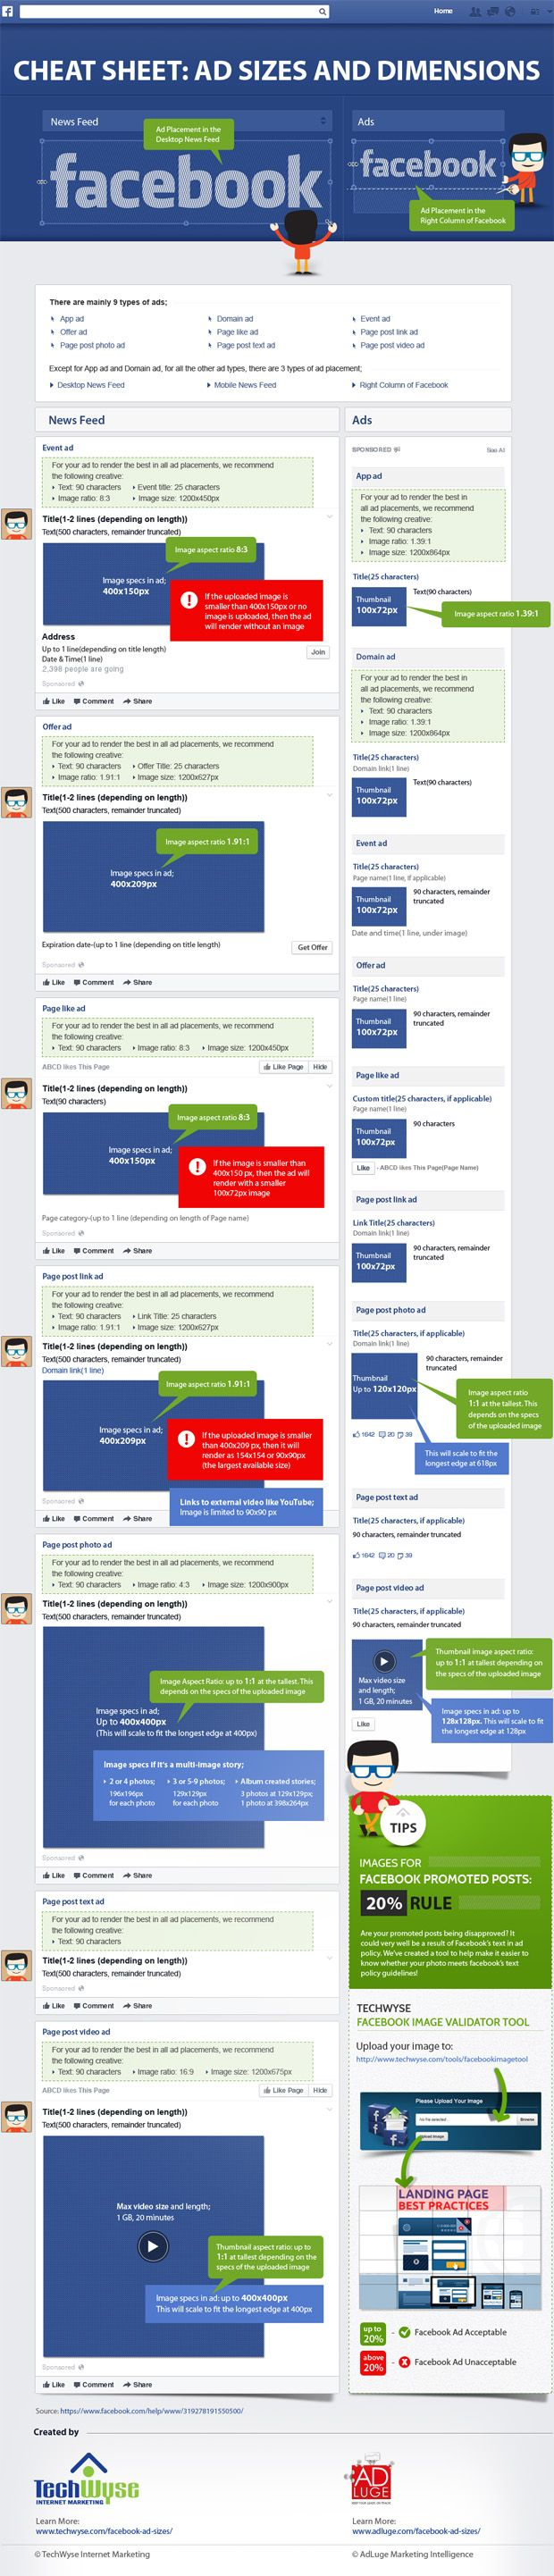 Facebook Ad Specifications and Dimensions [INFOGRAPHIC] #socialmedia